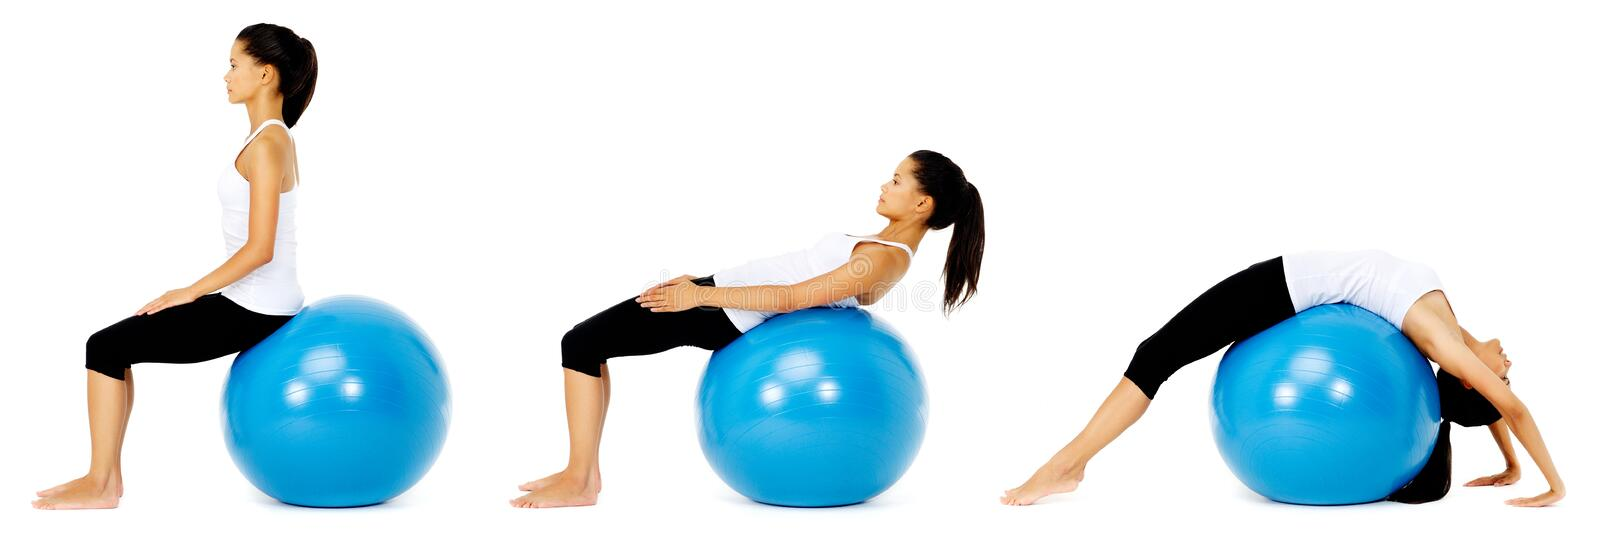 Exercice de bille de Pilates photos libres de droits